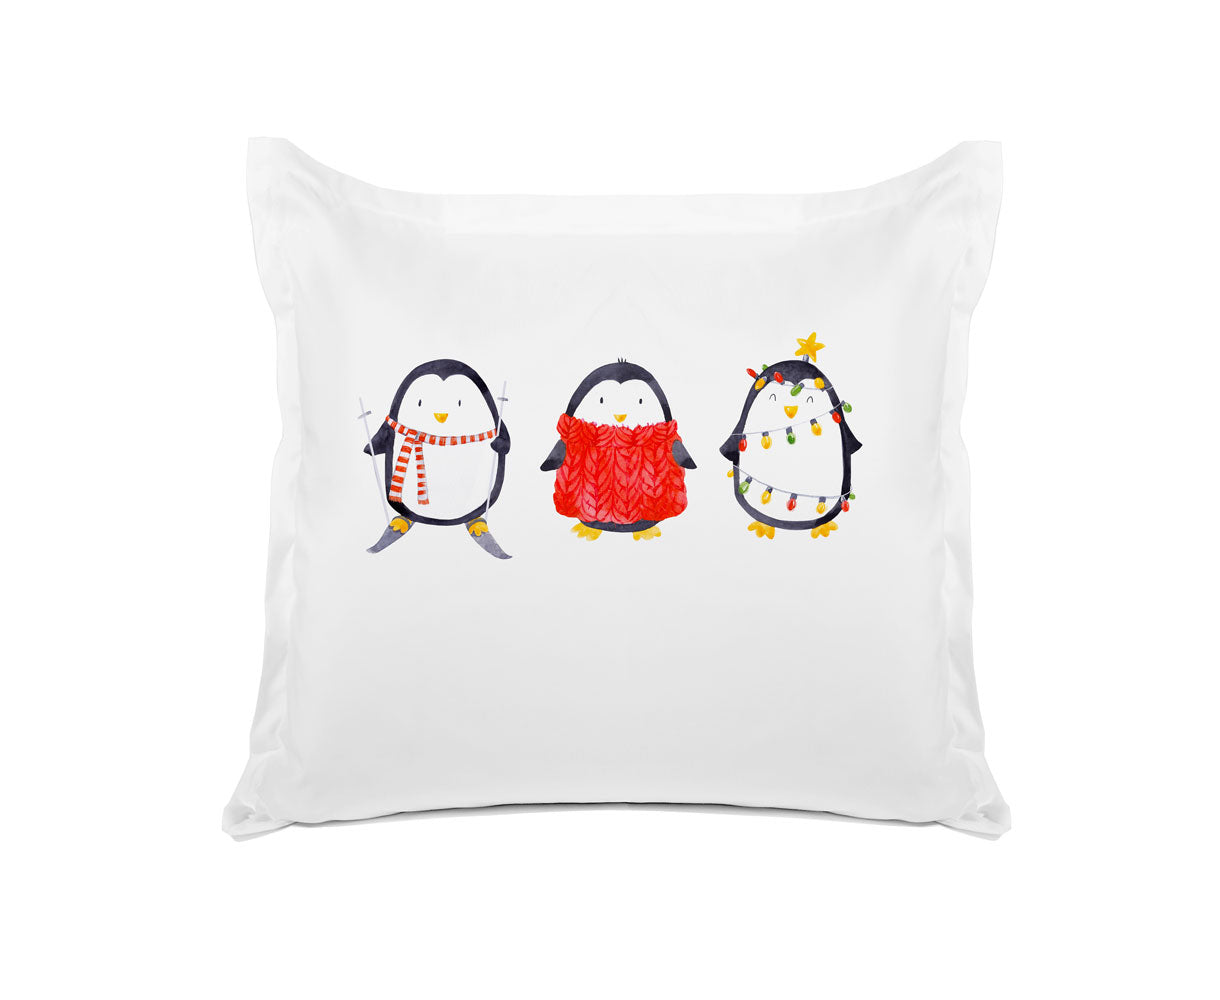 Peewee, Piccolo And Popper - Kids Personalized Pillowcase Collection-Di Lewis